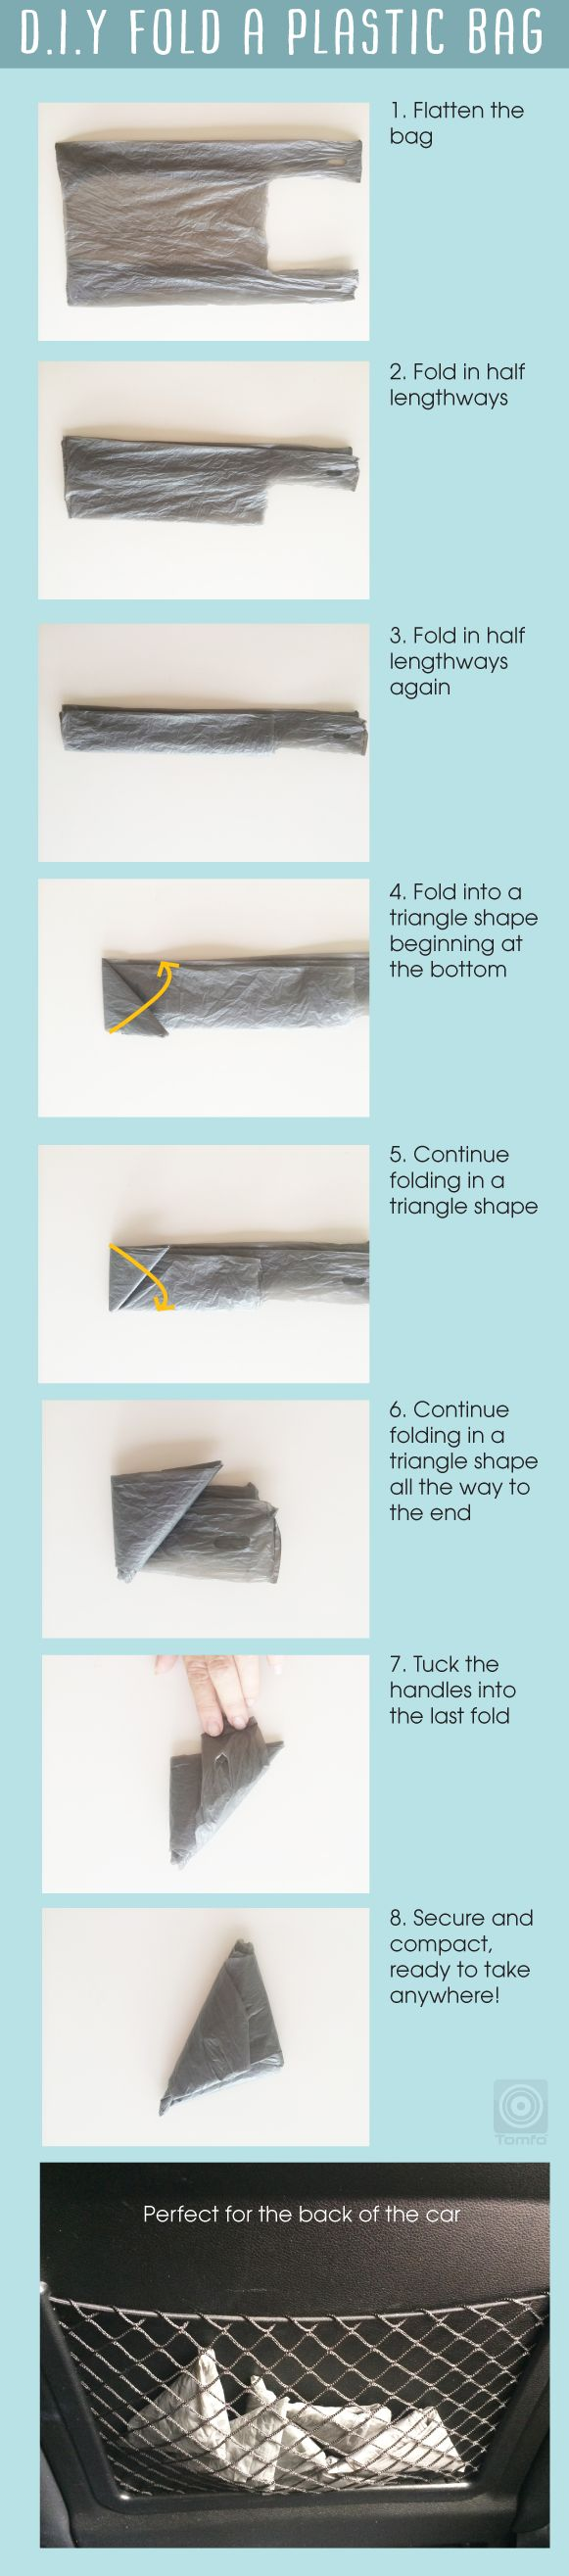 Easy to do and go green at the same time. Visit http://www.tomfo.com/how-to-fold-a-plastic-bag-save-space-and-go-greener